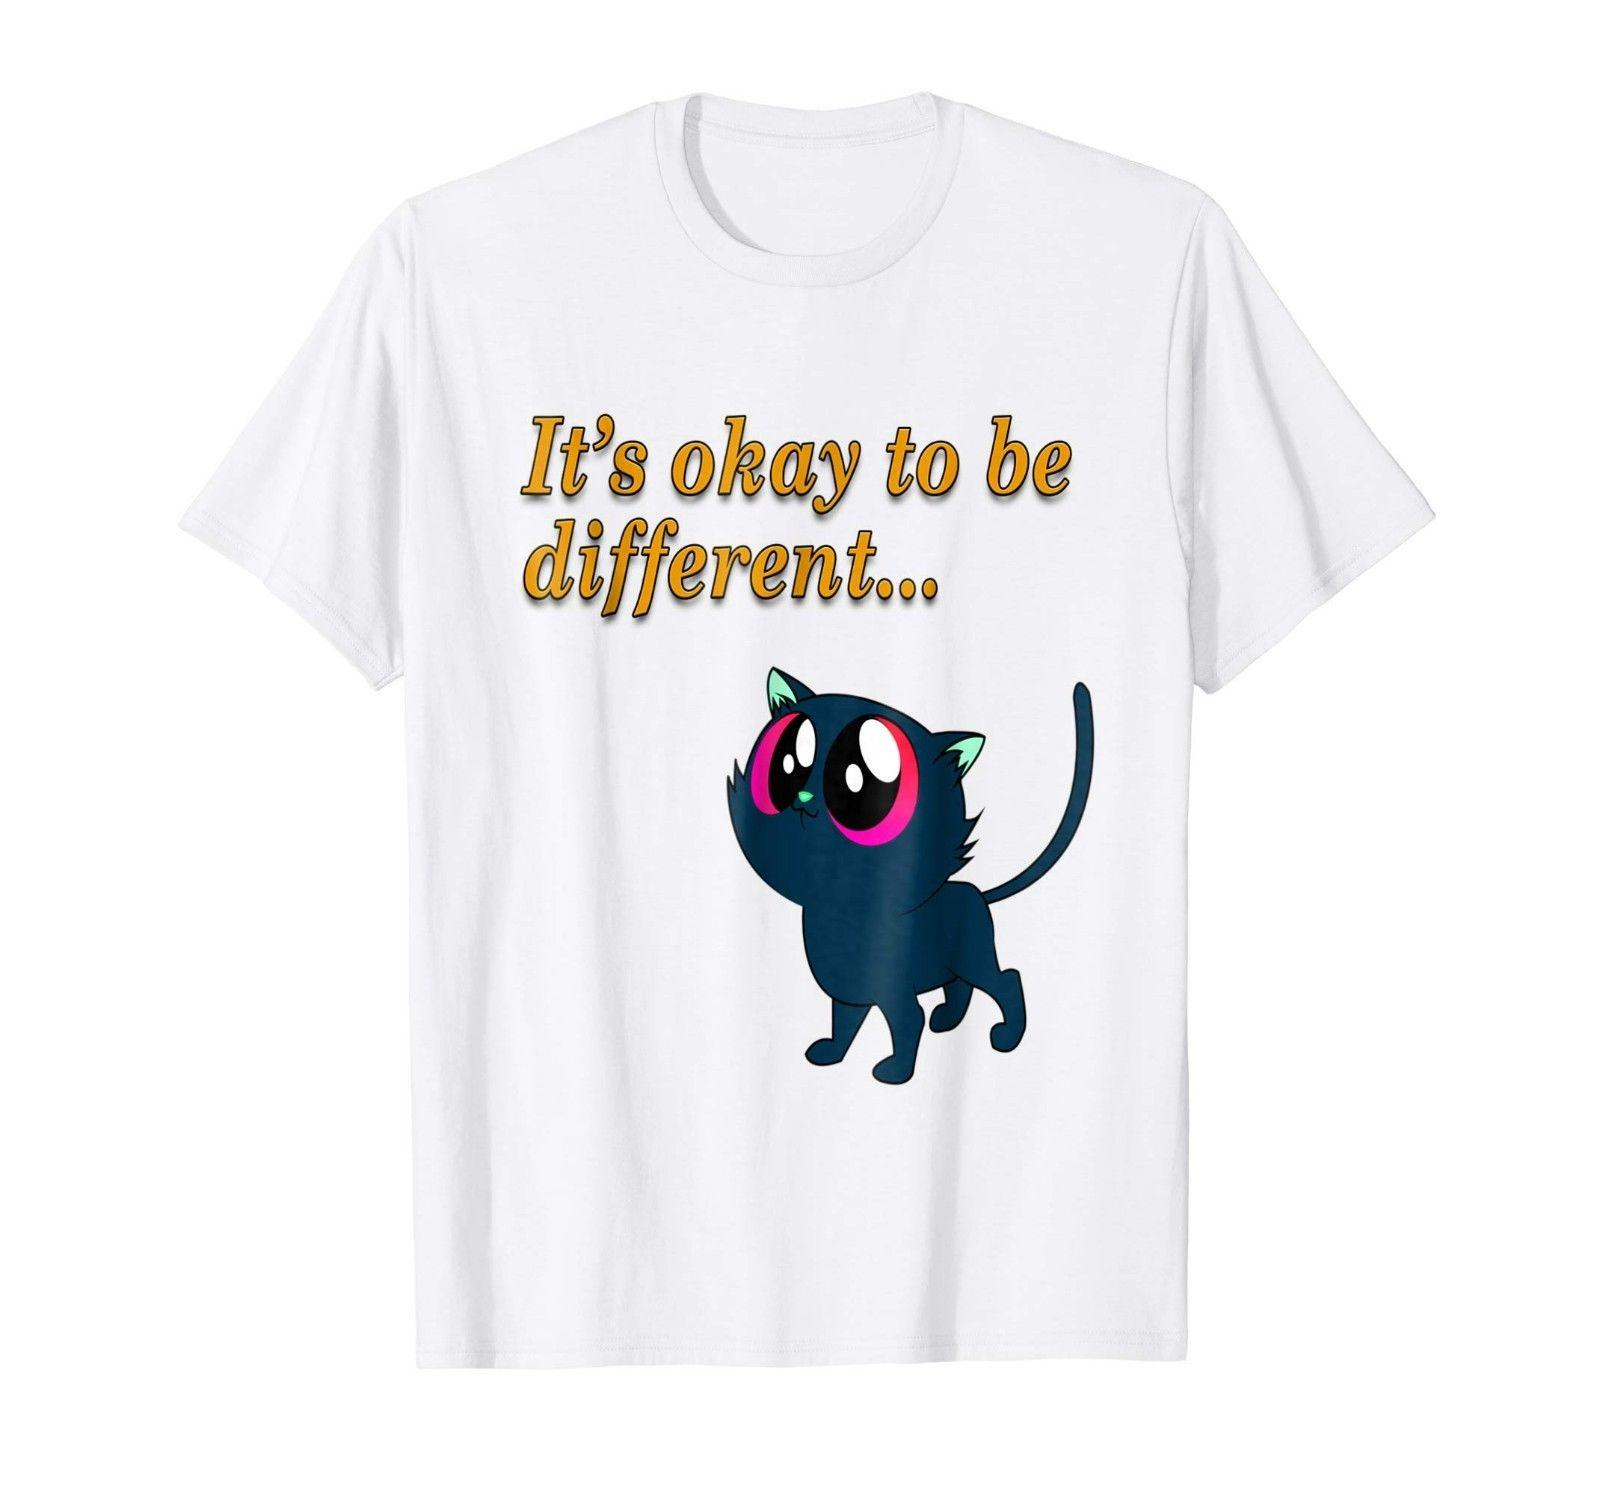 8f833f694 Cat T-shirt Blue Kitty Design Art It's Okay To Be Different Graphic White  Men T Shirts Classical Top Tee Basic Models